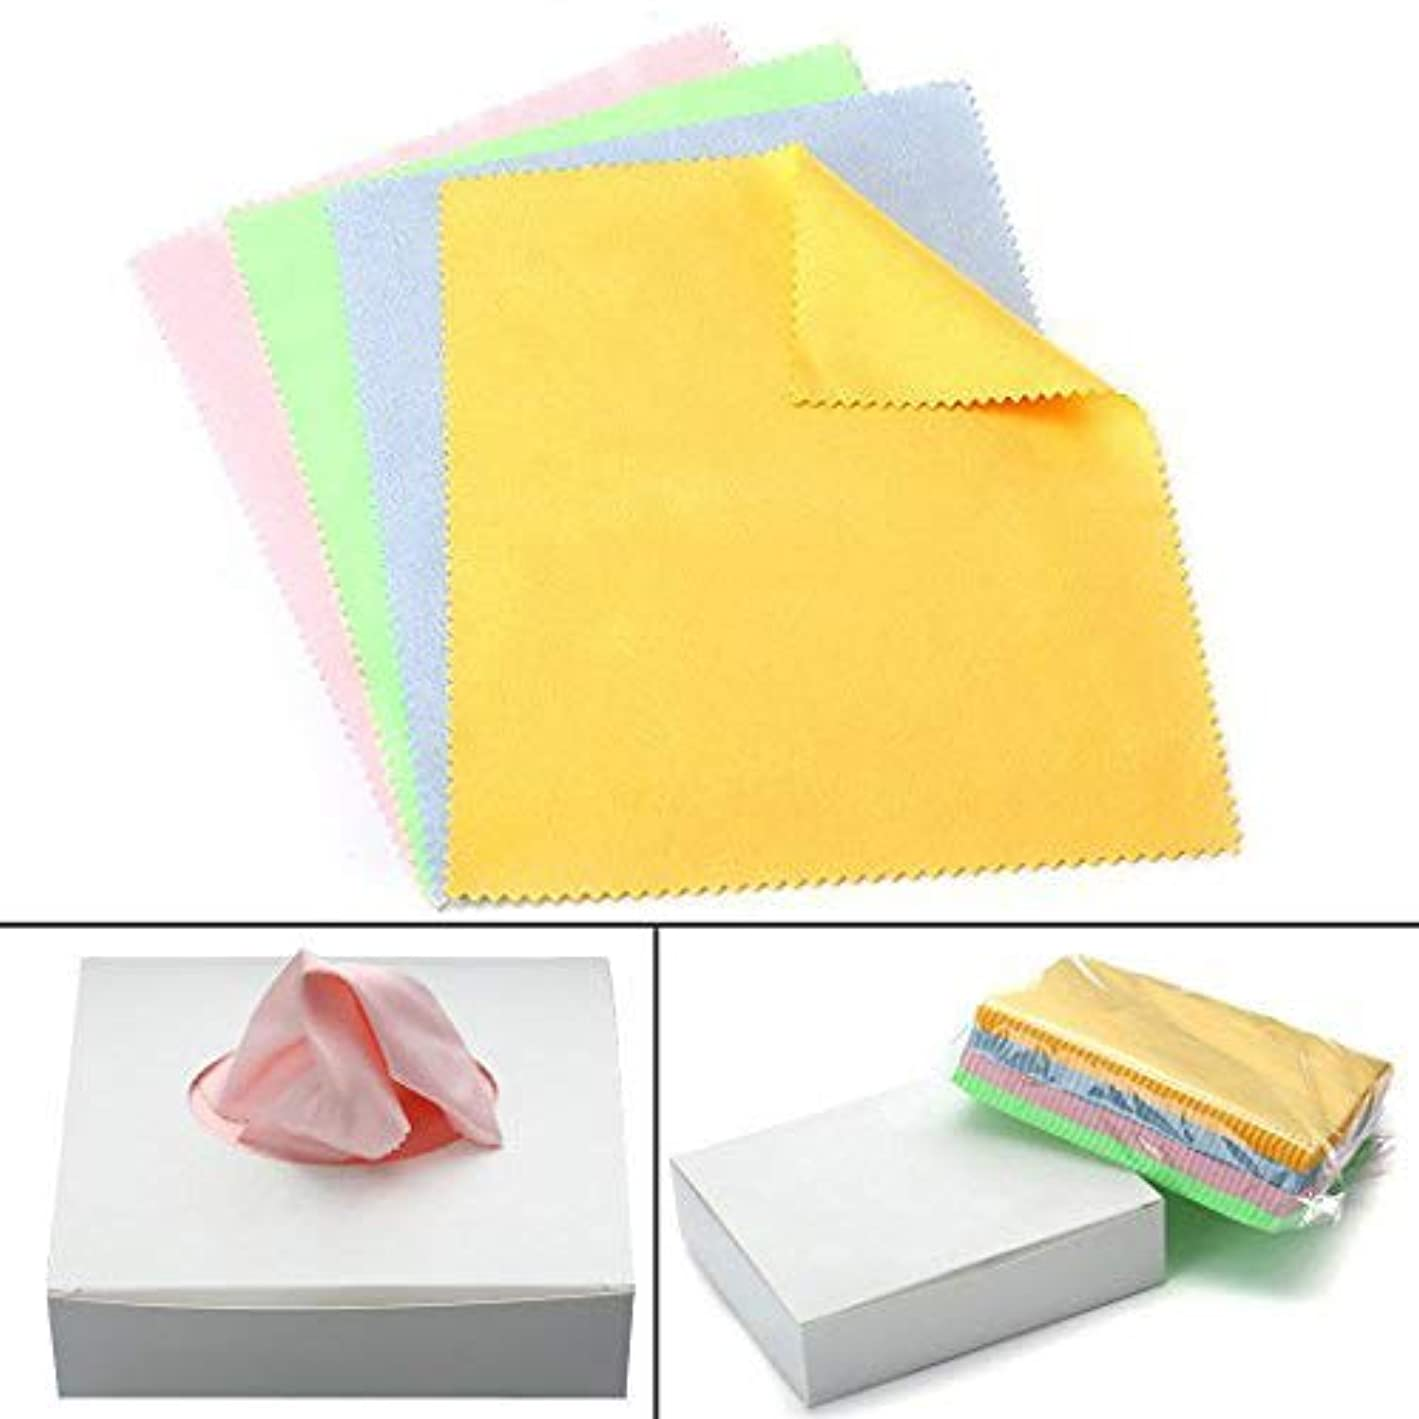 Magic Polishing Cloth, 100 Pack High Grade Jewelry Cleaning Cloth for Sterling Silver Gold Platinum and Lens Glasses Screens Watches Coins Instruments y30587145309917